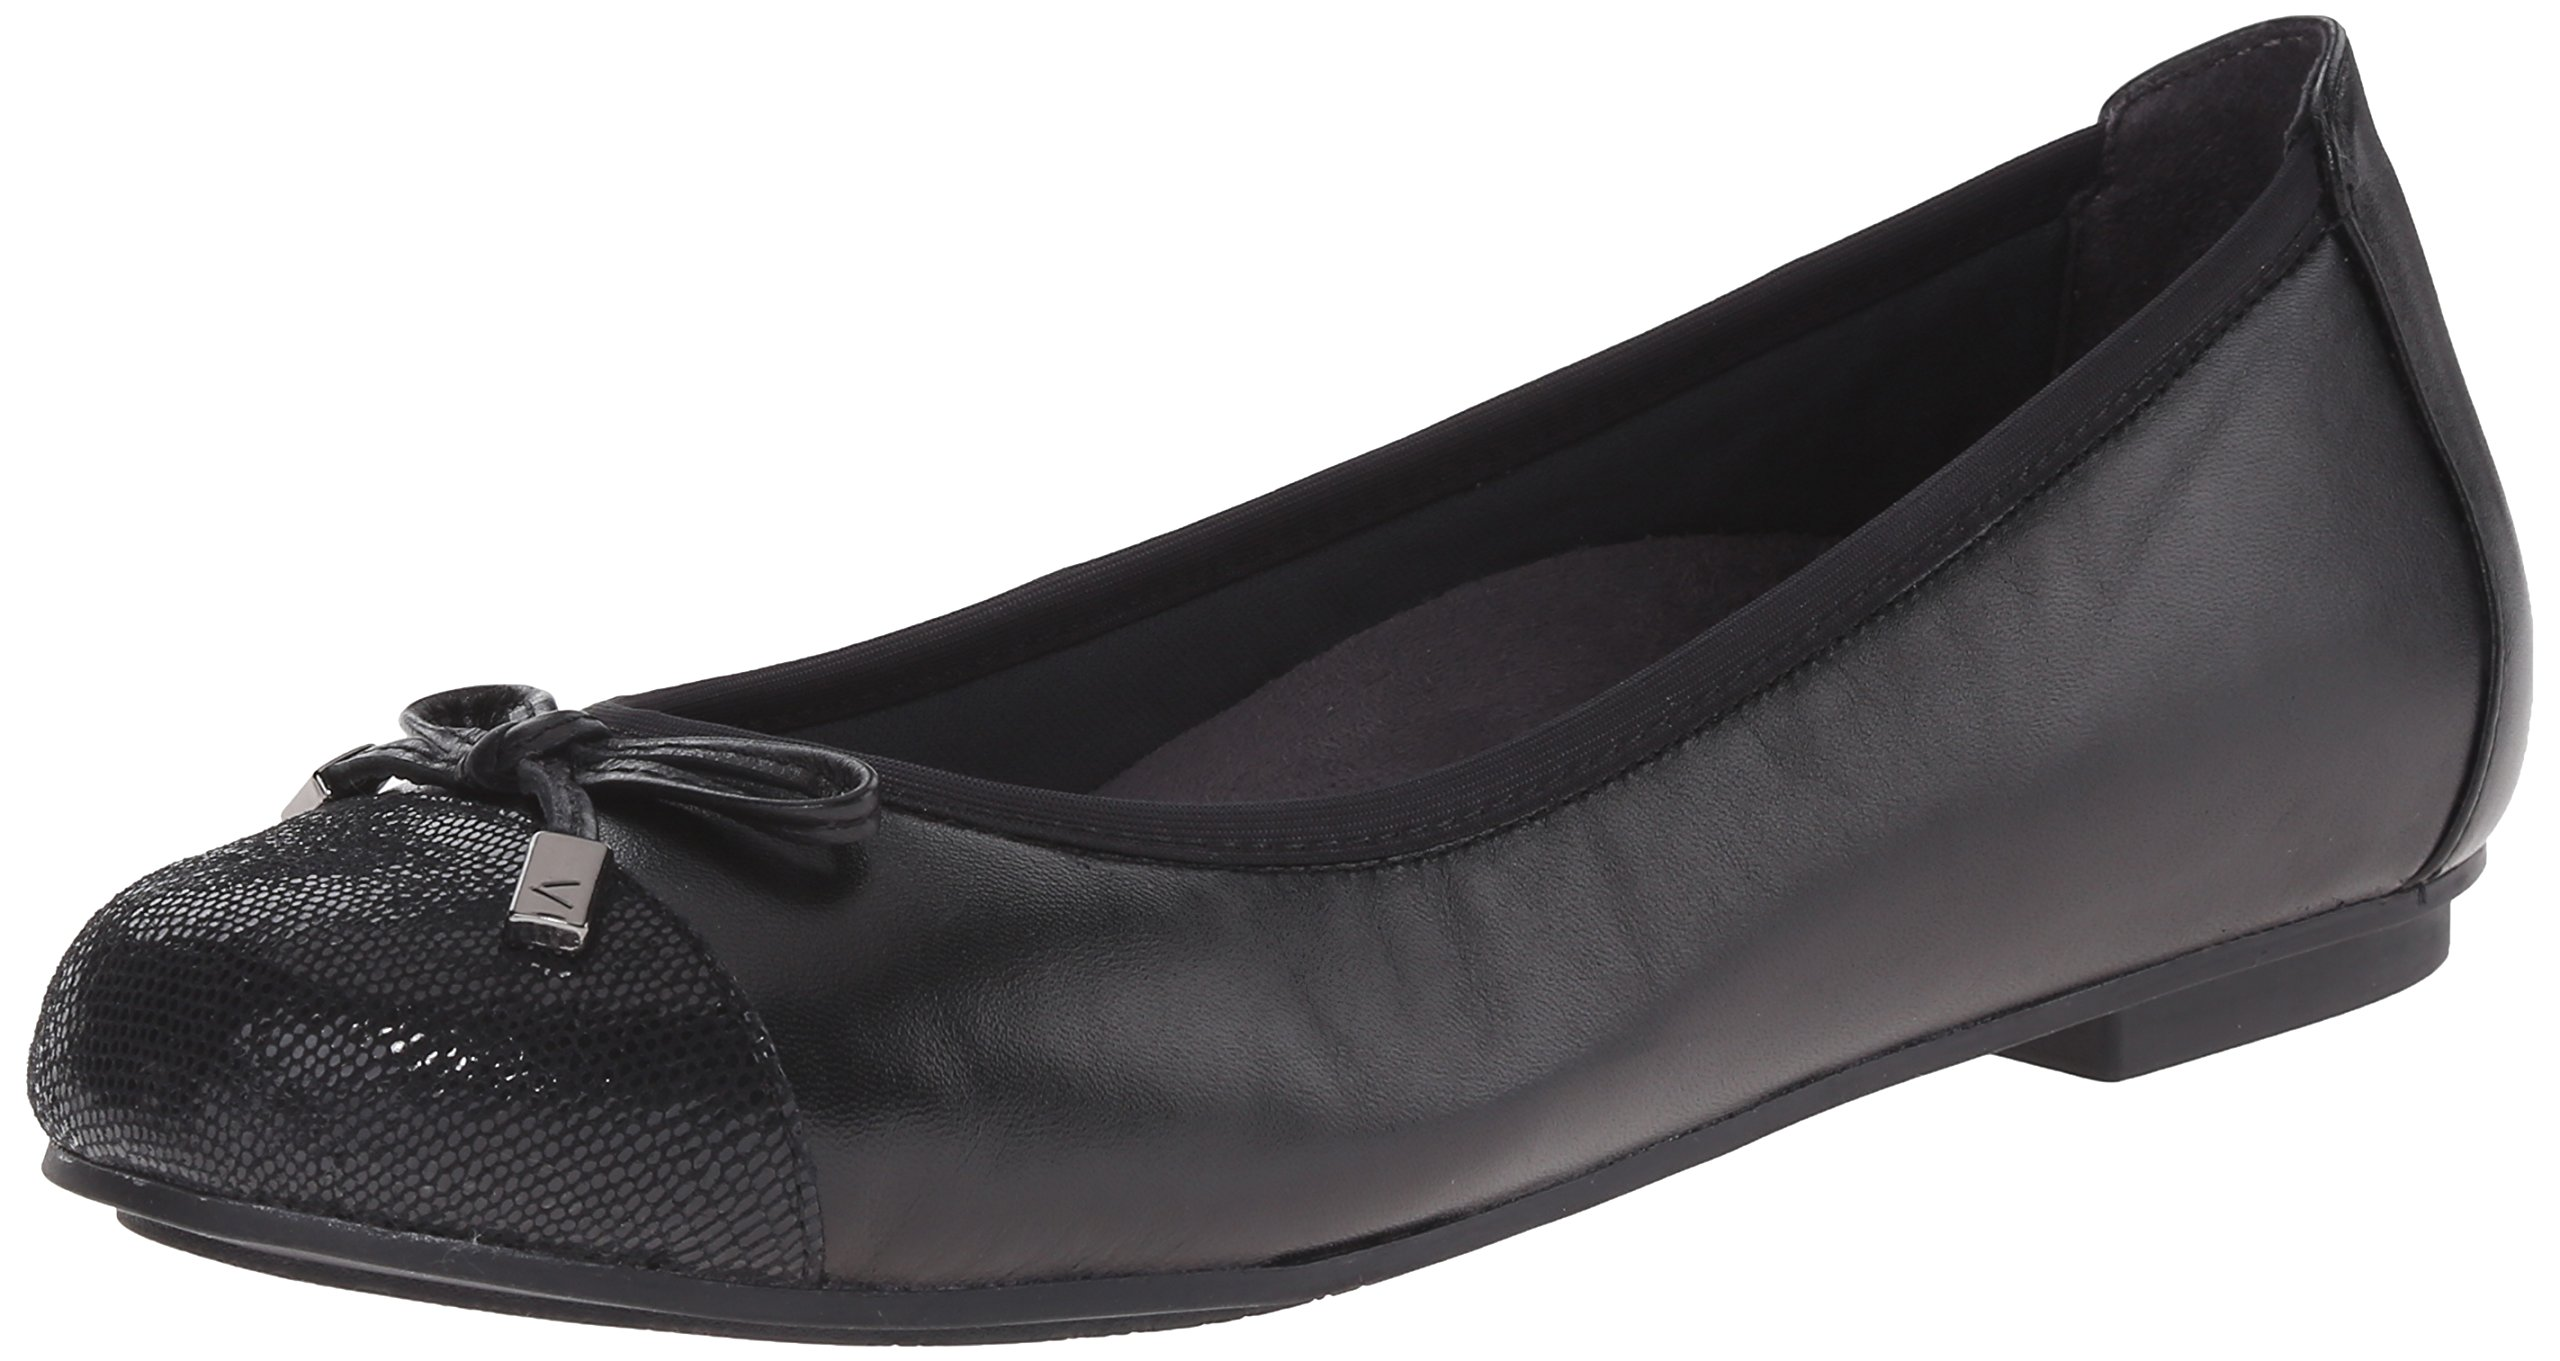 Vionic with Orthaheel Technology Women's Minna Ballet Flat,Black,US 8.5 M